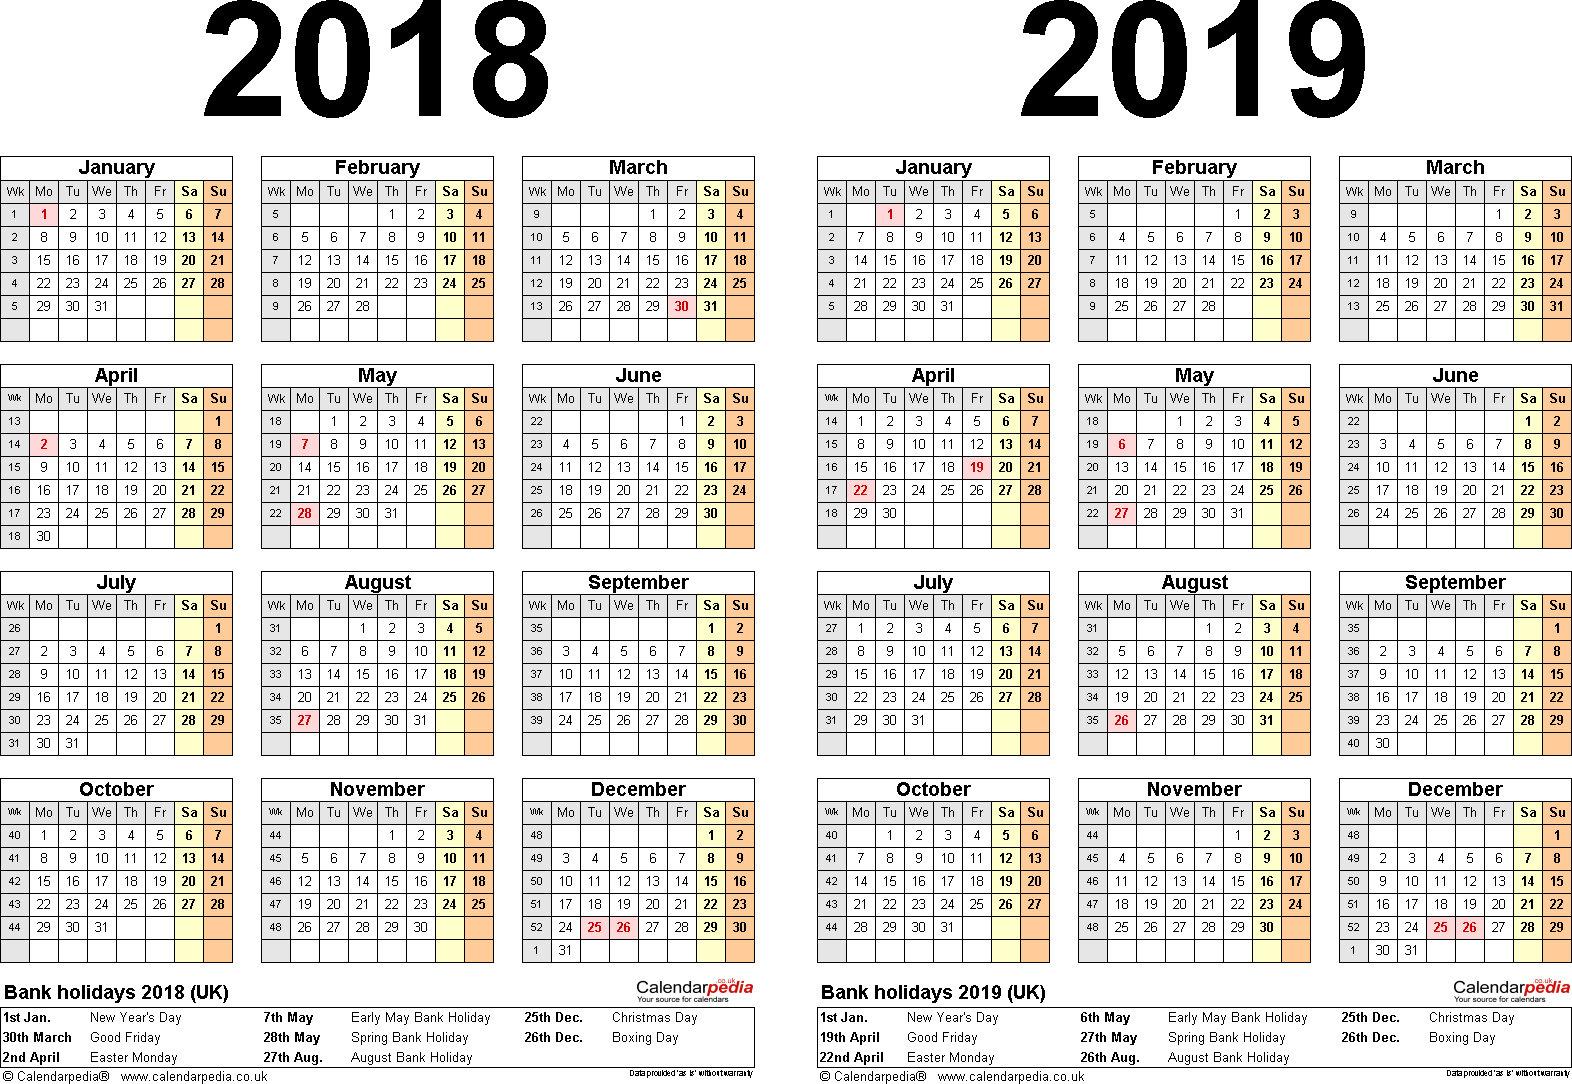 Download Template 3: Word template for two year calendar 2018/2019 (landscape orientation, 1 page, A4)